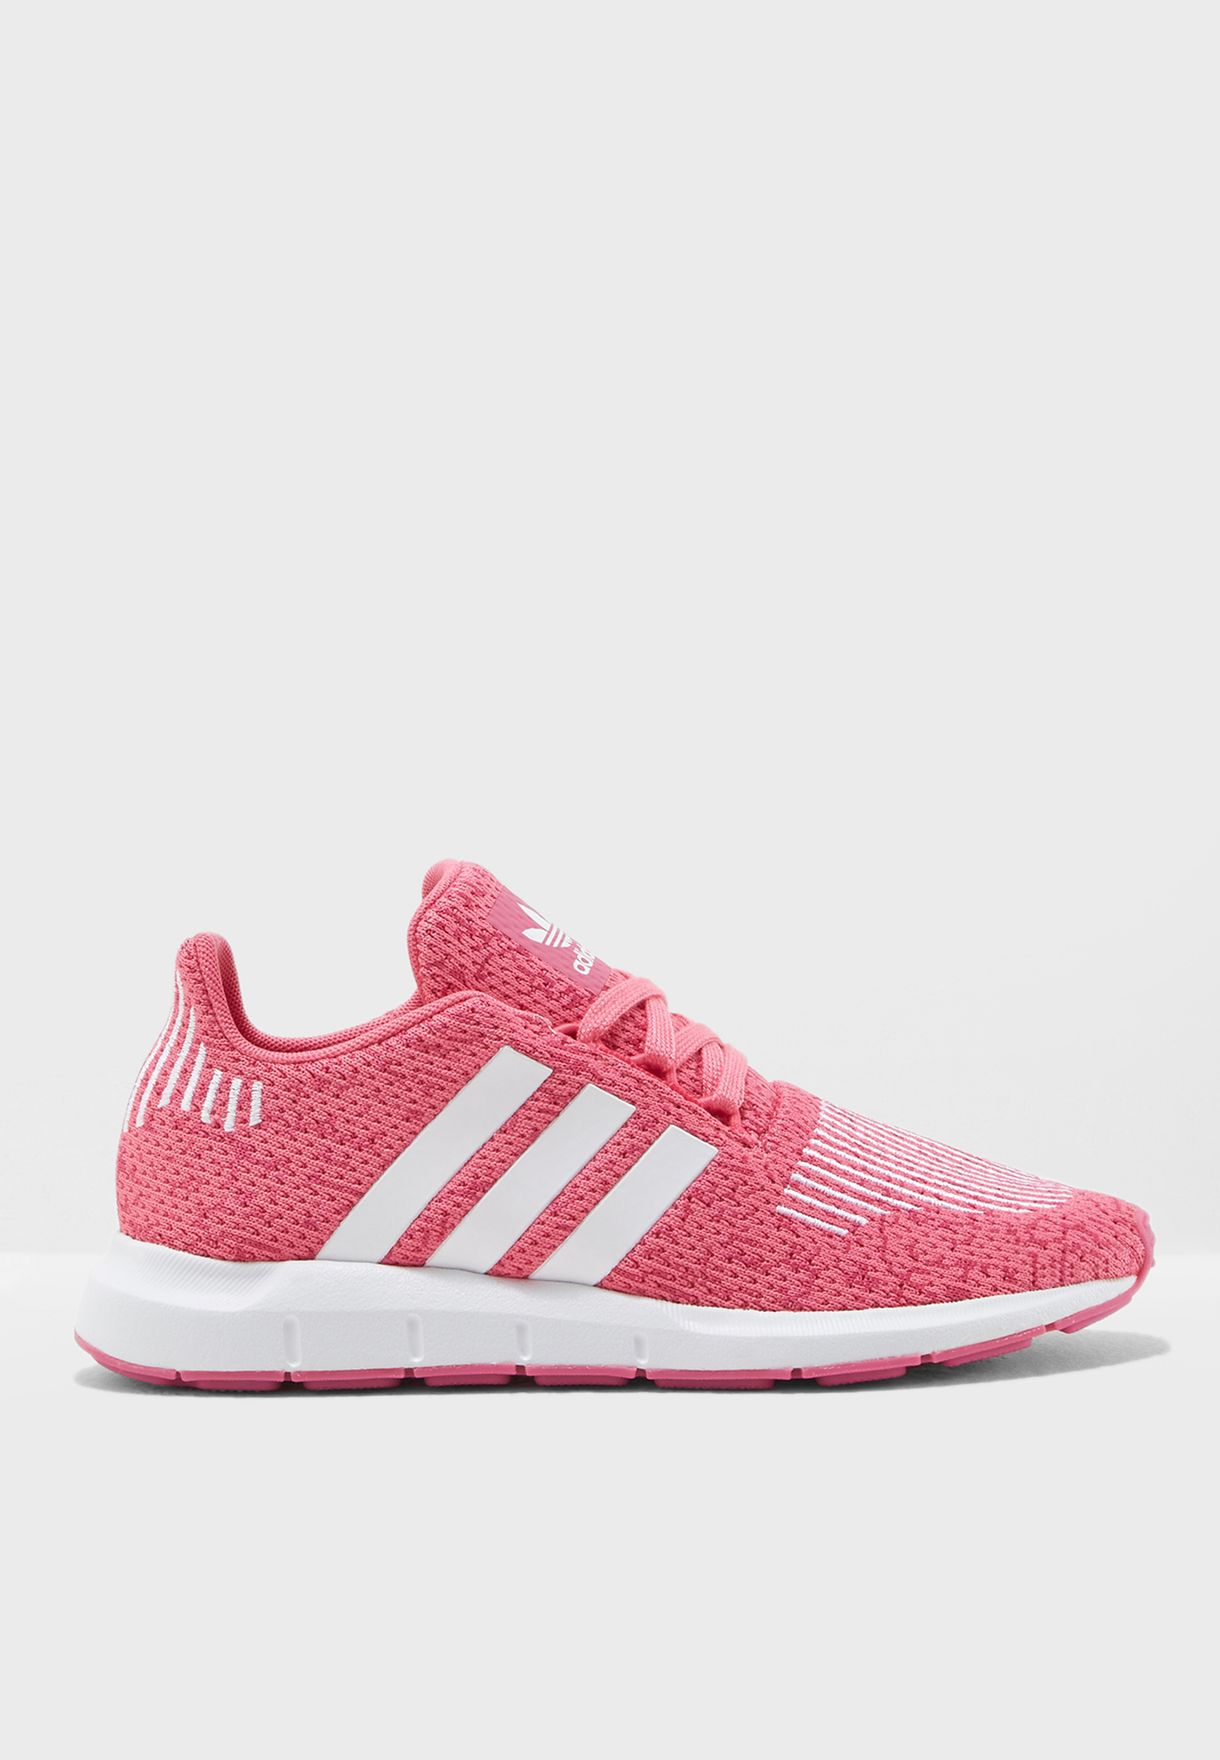 9fe69809b170a Shop adidas Originals pink Youth Swift Run B37117 for Kids in UAE ...